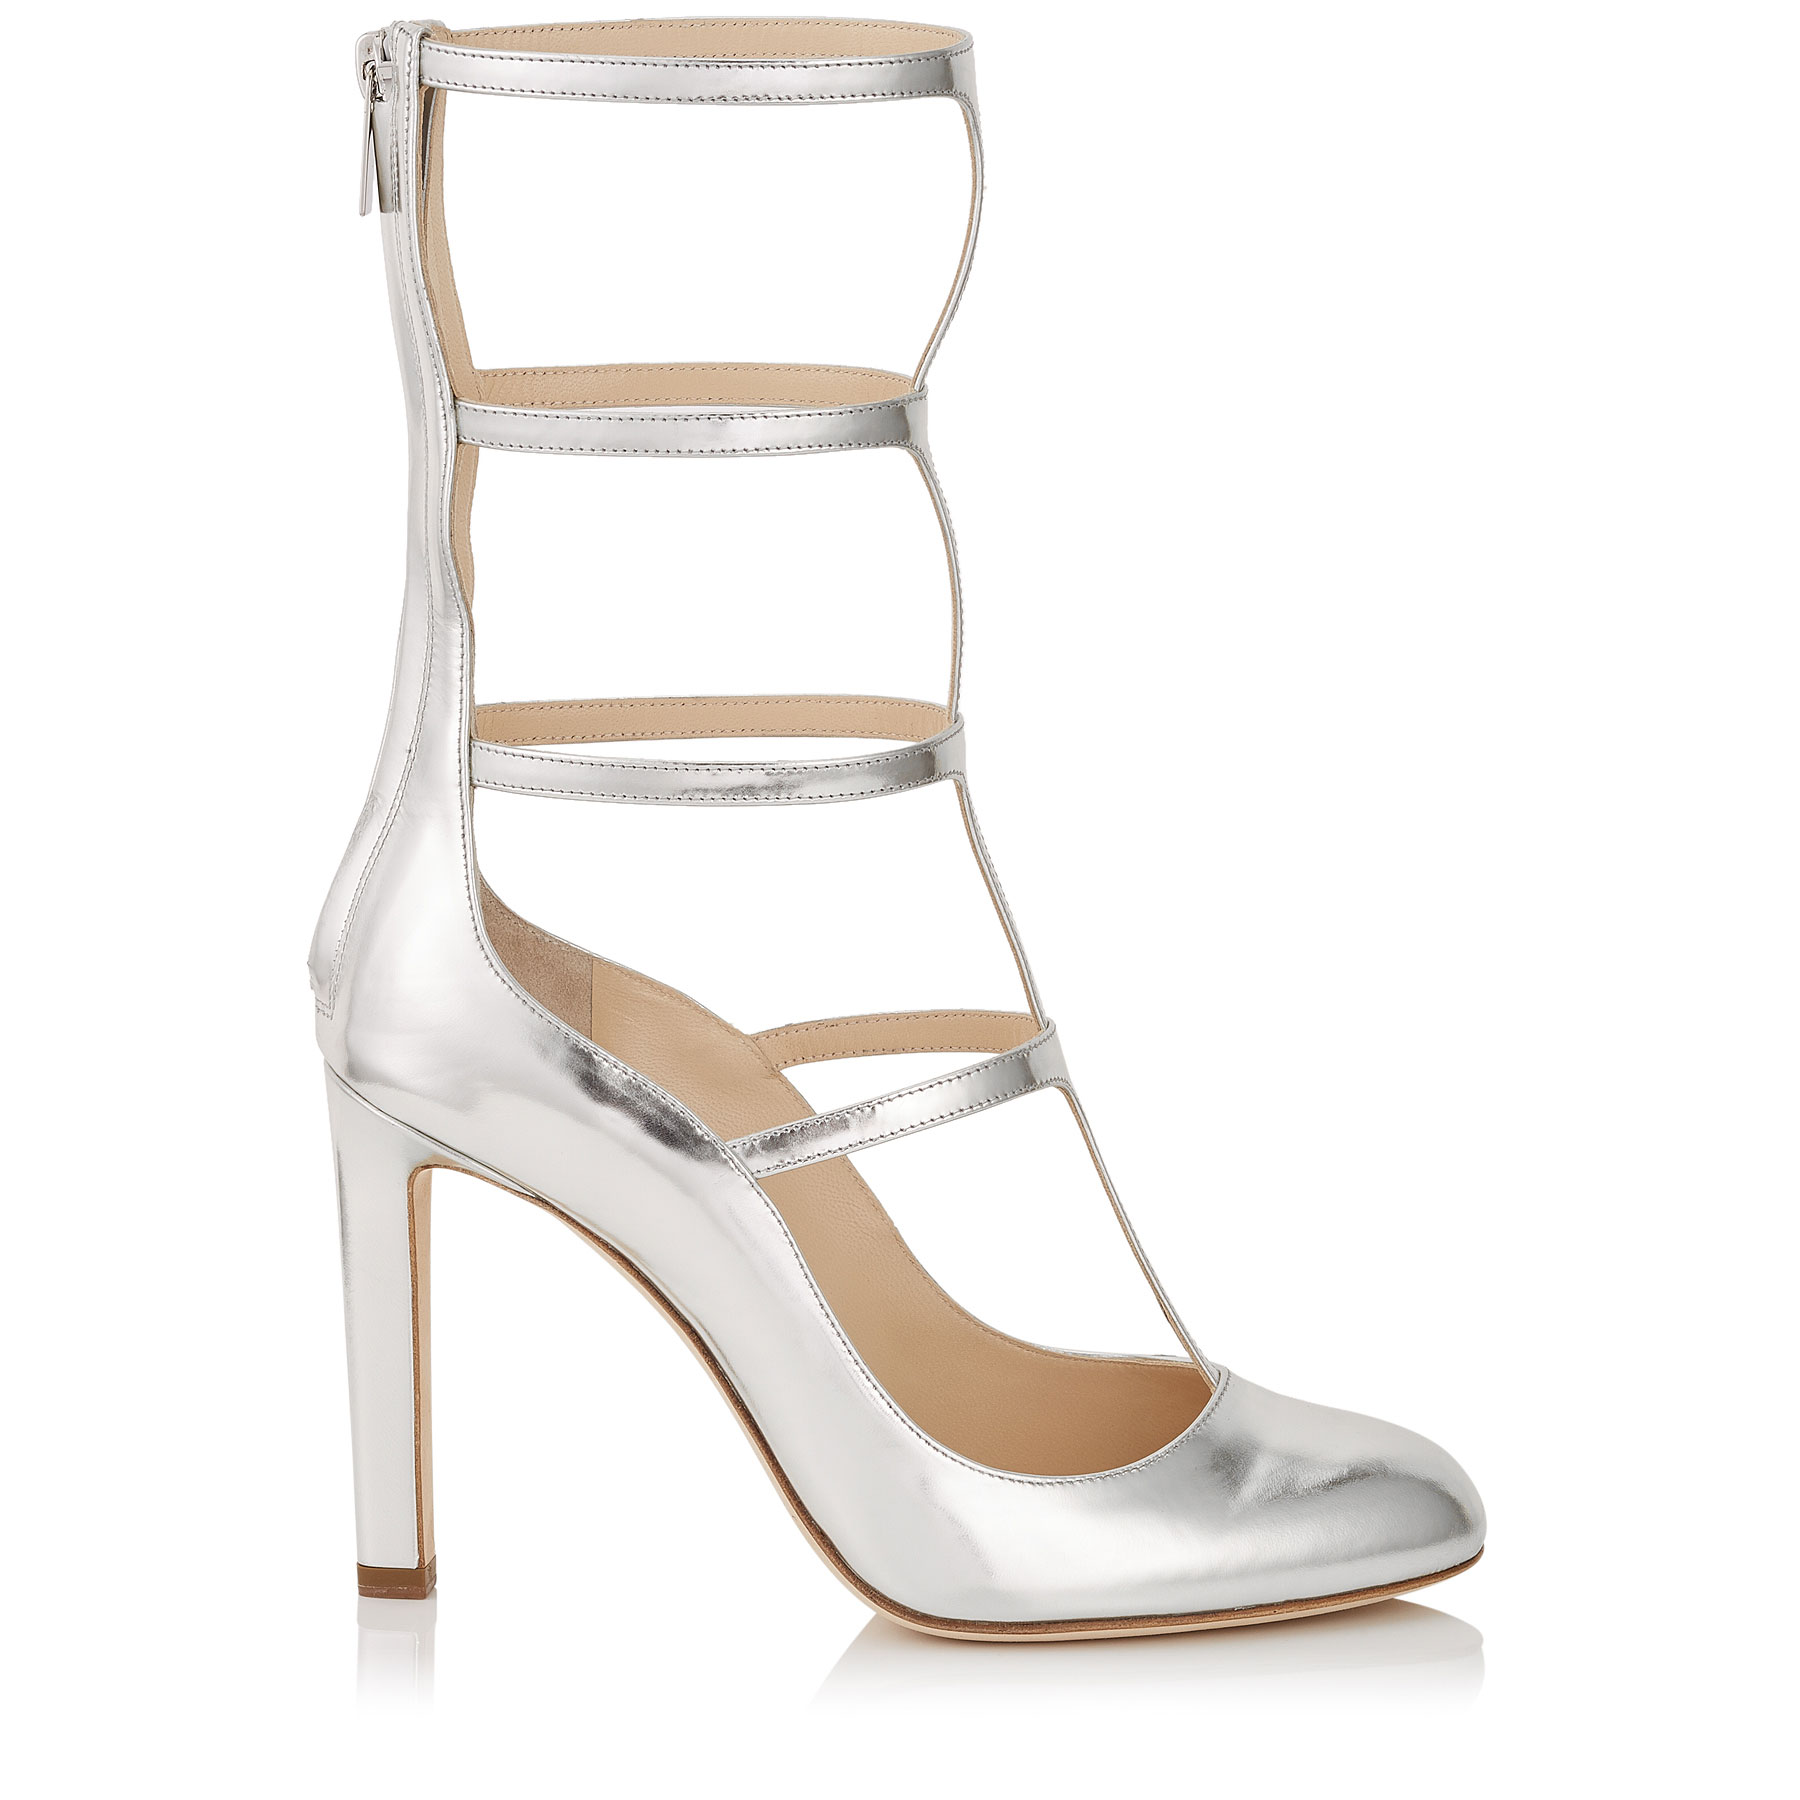 DUNDEE 100 Silver Mirror Leather Caged Round Toe Pumps